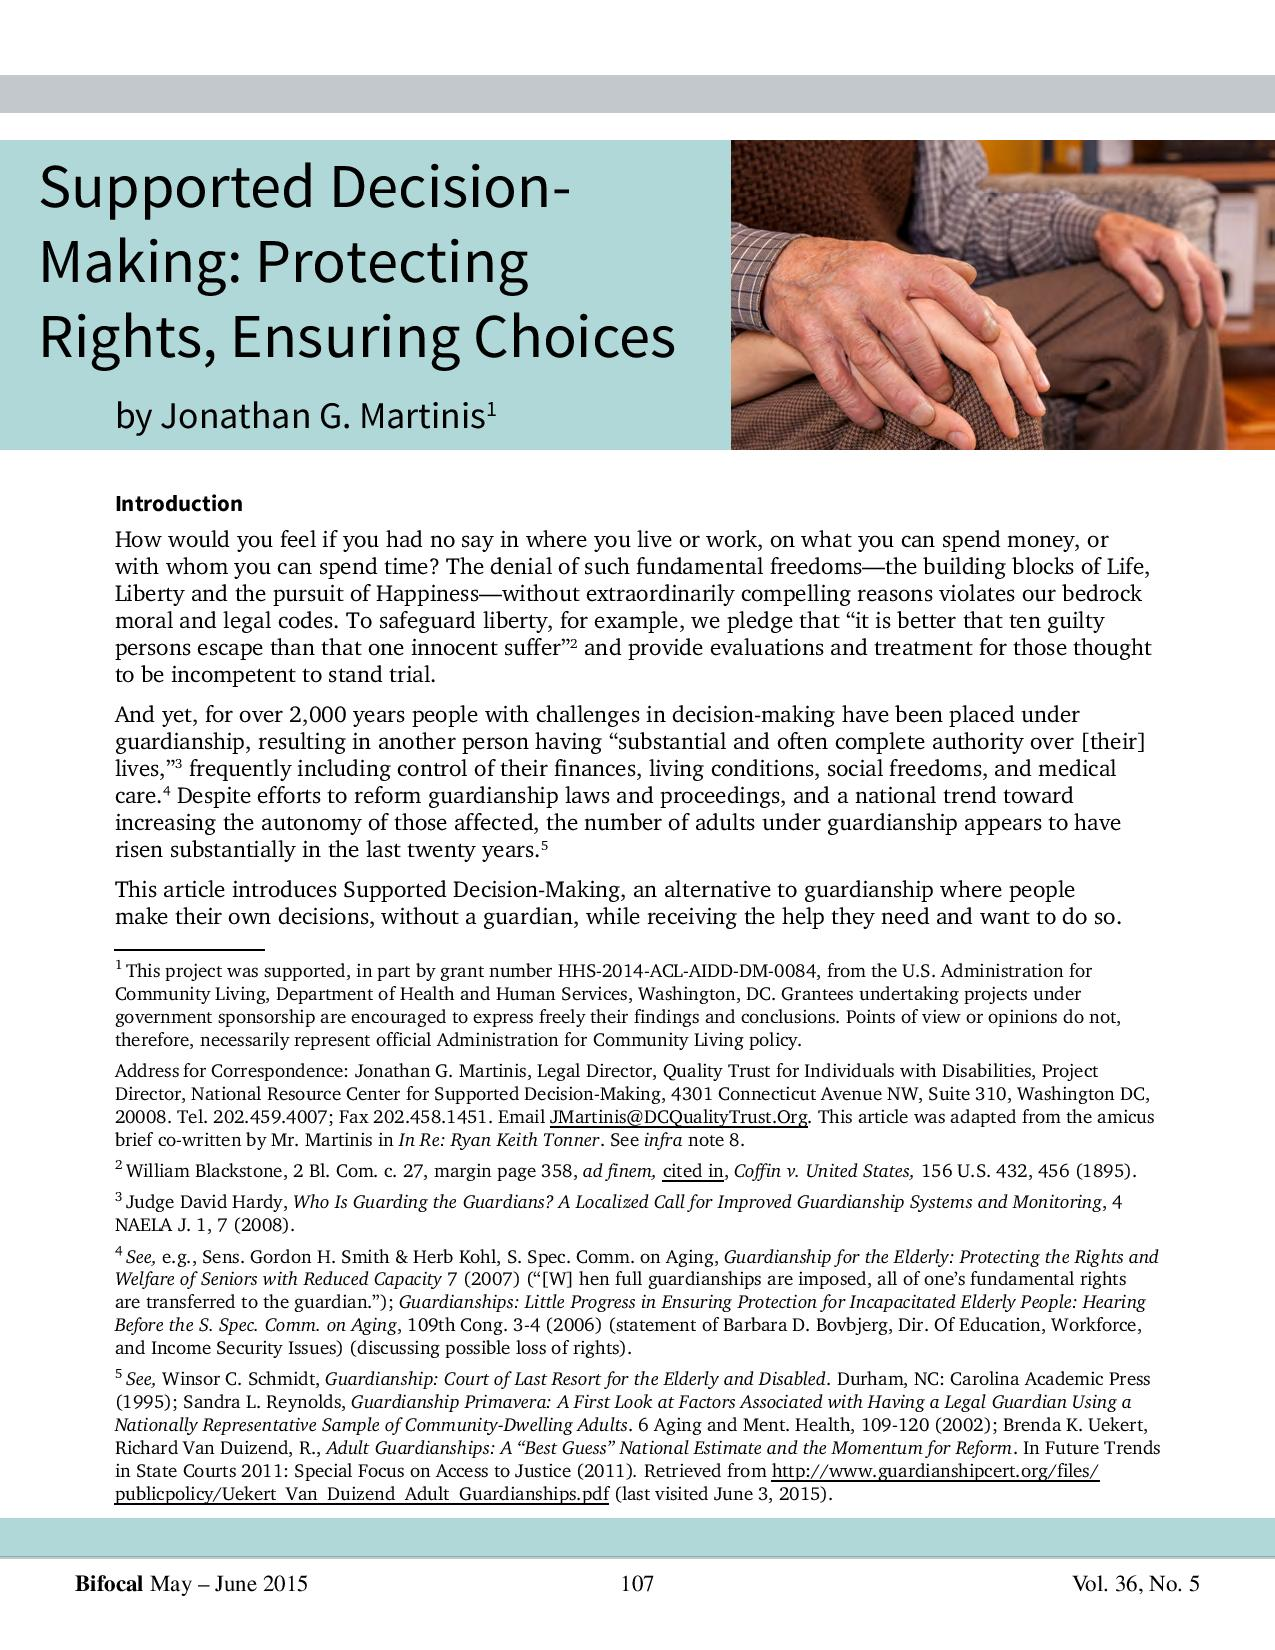 Cover art for: Supported Decision Making: Protecting Rights, Ensuring Choices